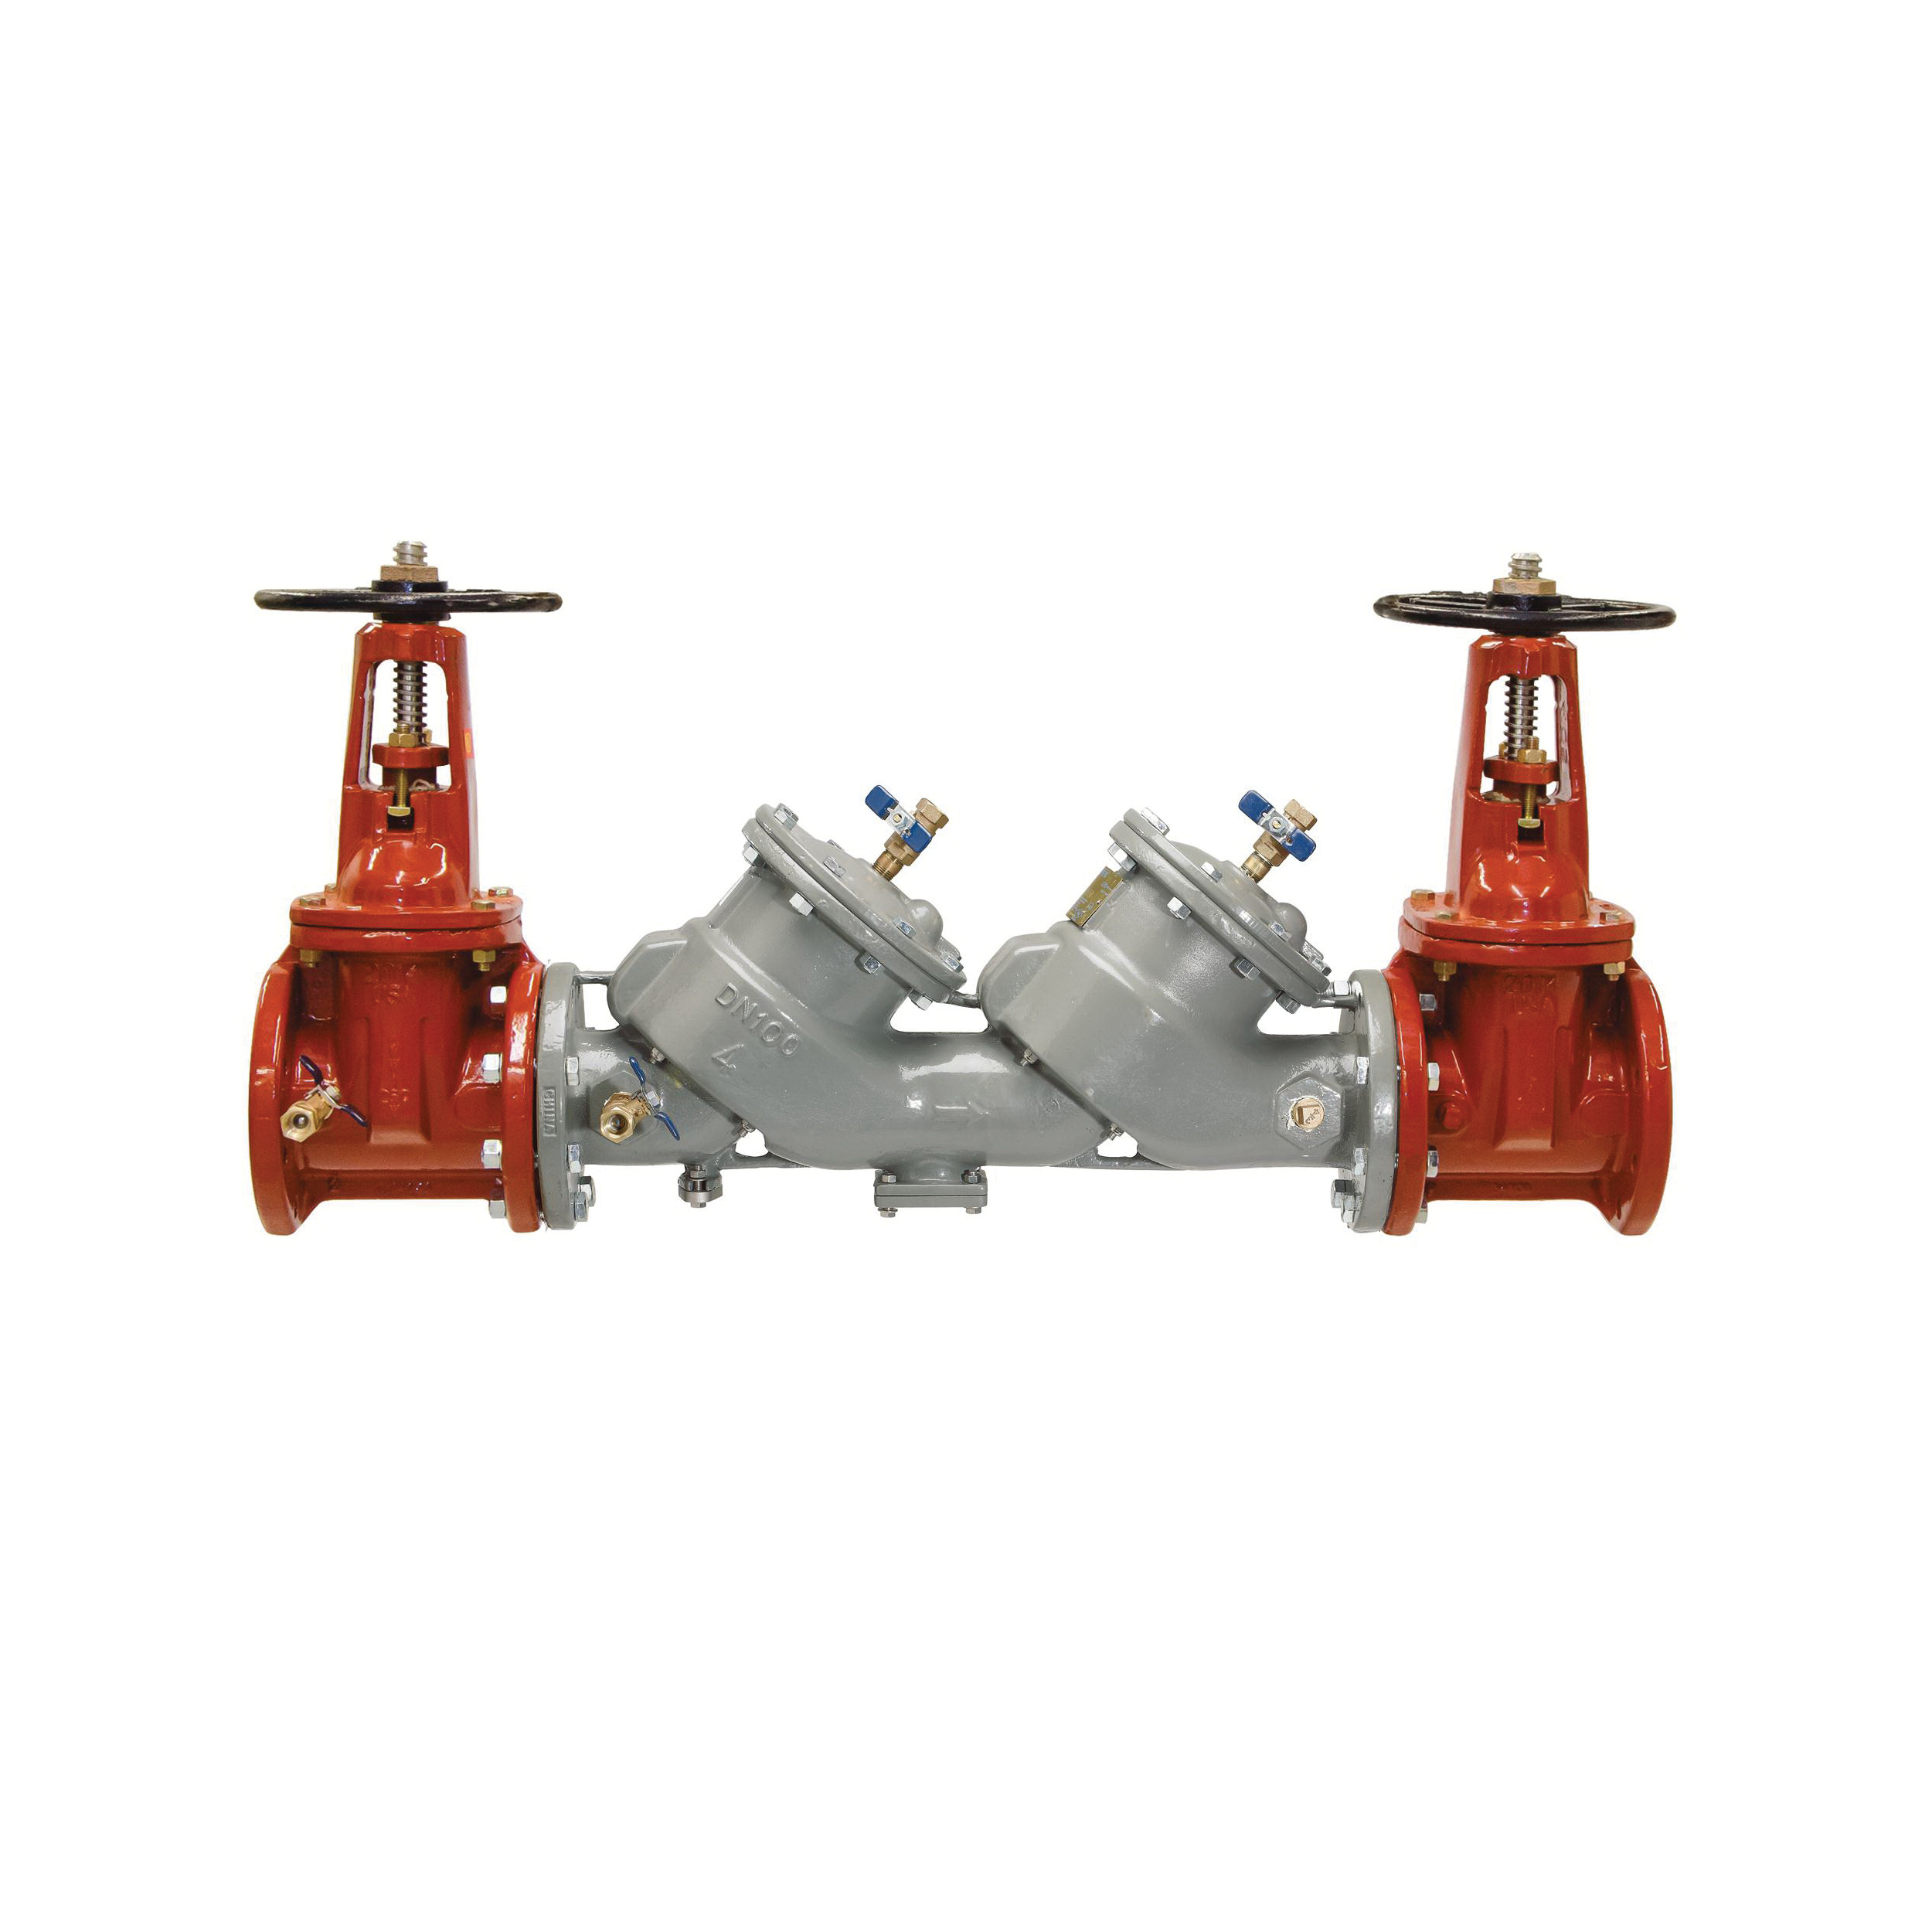 Febco® MasterSeries® 0683076 LF850 In-Line Large Diameter Double Check Valve Assembly, 4 in, Flange, Resilient Wedge Gate Valve, Ductile Iron Body